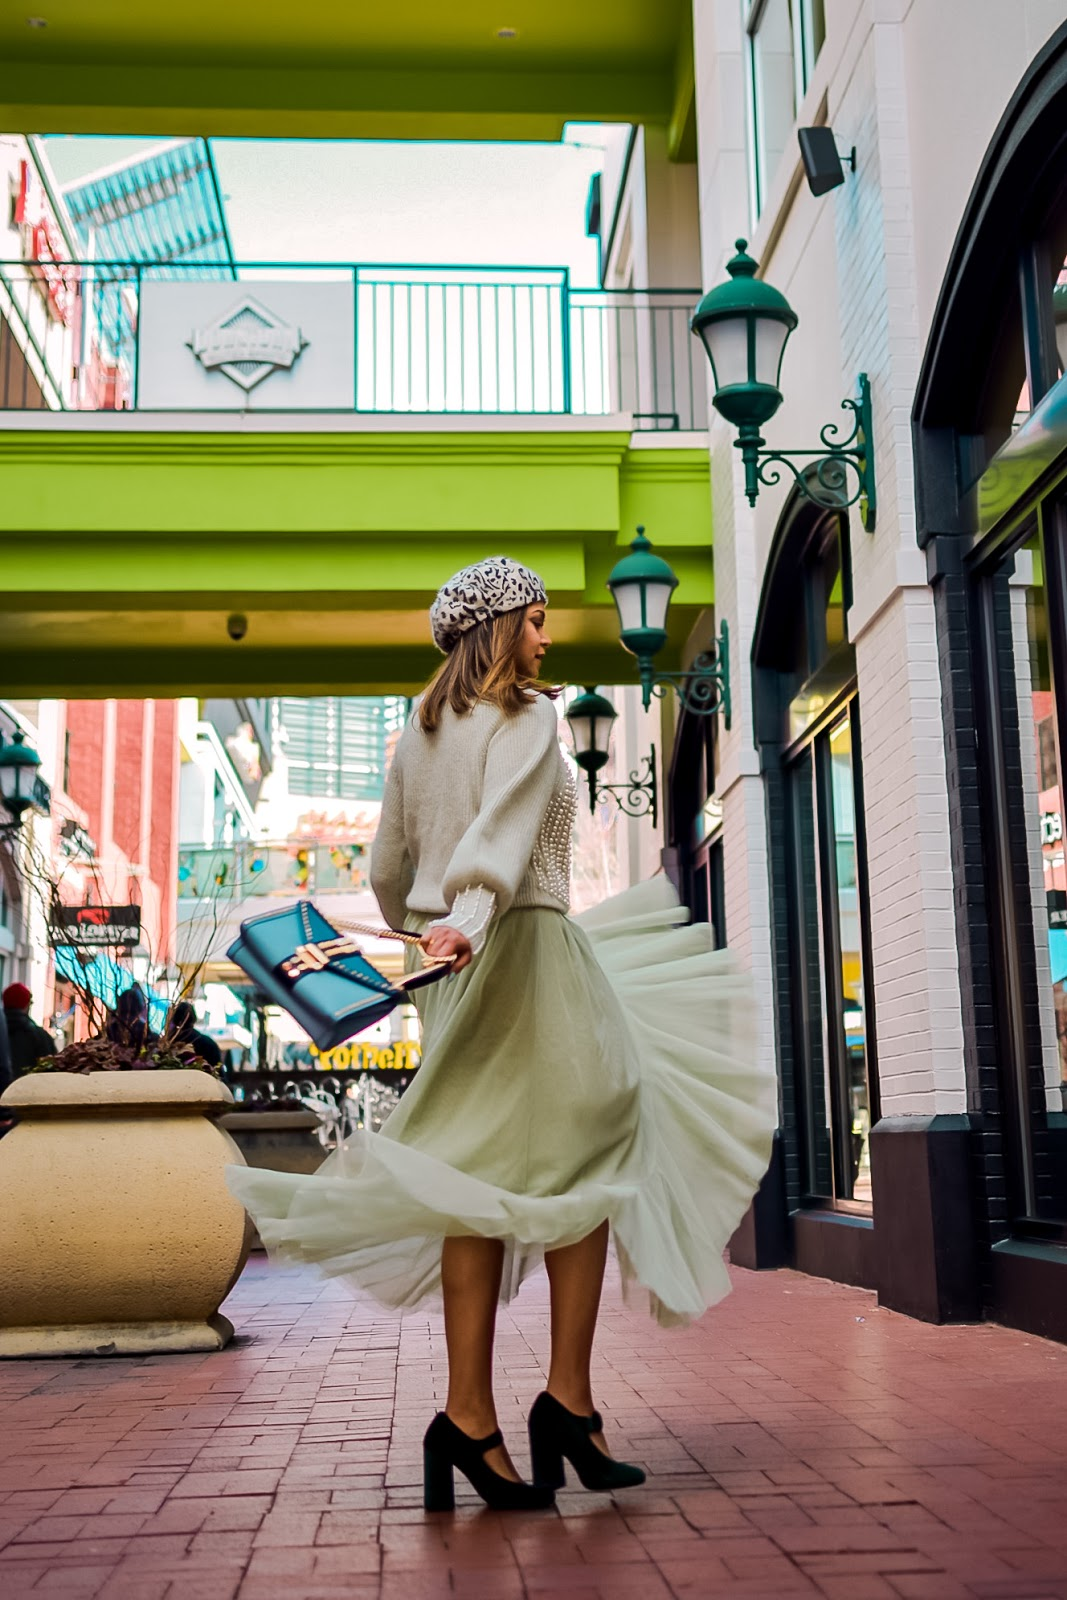 six things to buy after Christmas, shopping, holiday shopping, point pearl sweater, pistachio green tulle dress, holiday style, velvet mary janes, street style, wedding outfit, saumya shiohare, myriad musings